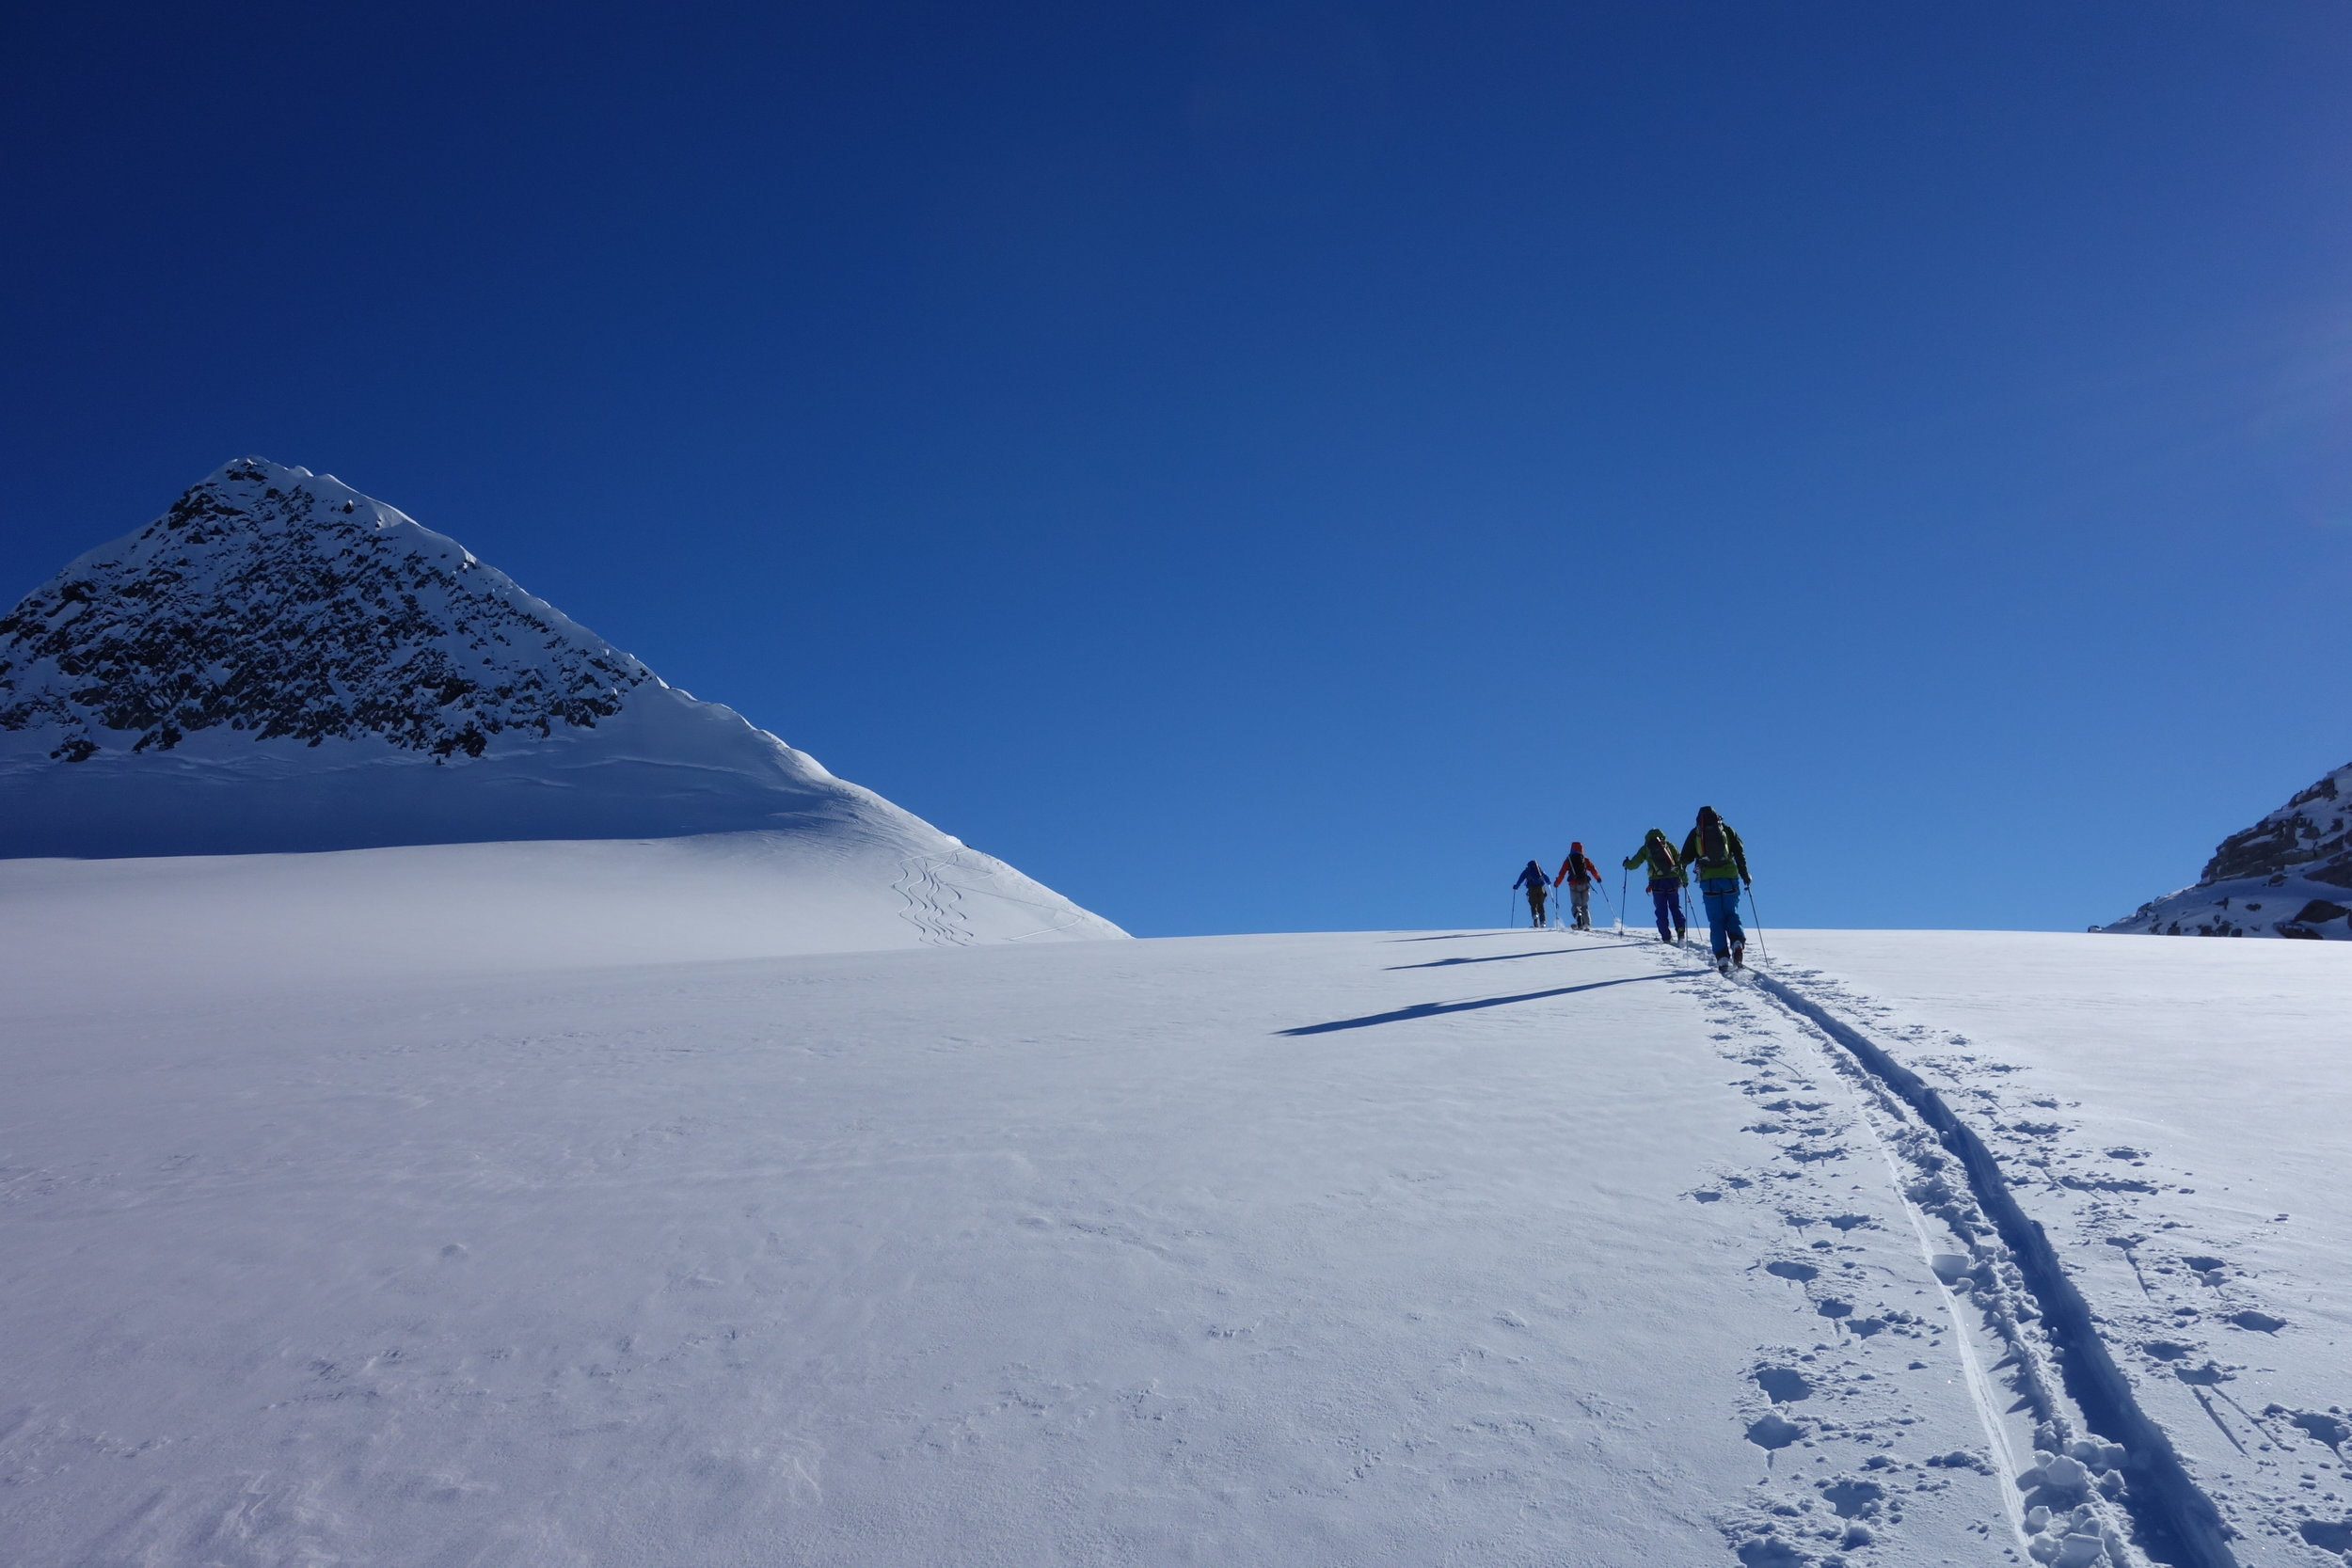 Candidates approach Sapphire Col on their AMGA Ski Mountaineering Guide exam, 2014.